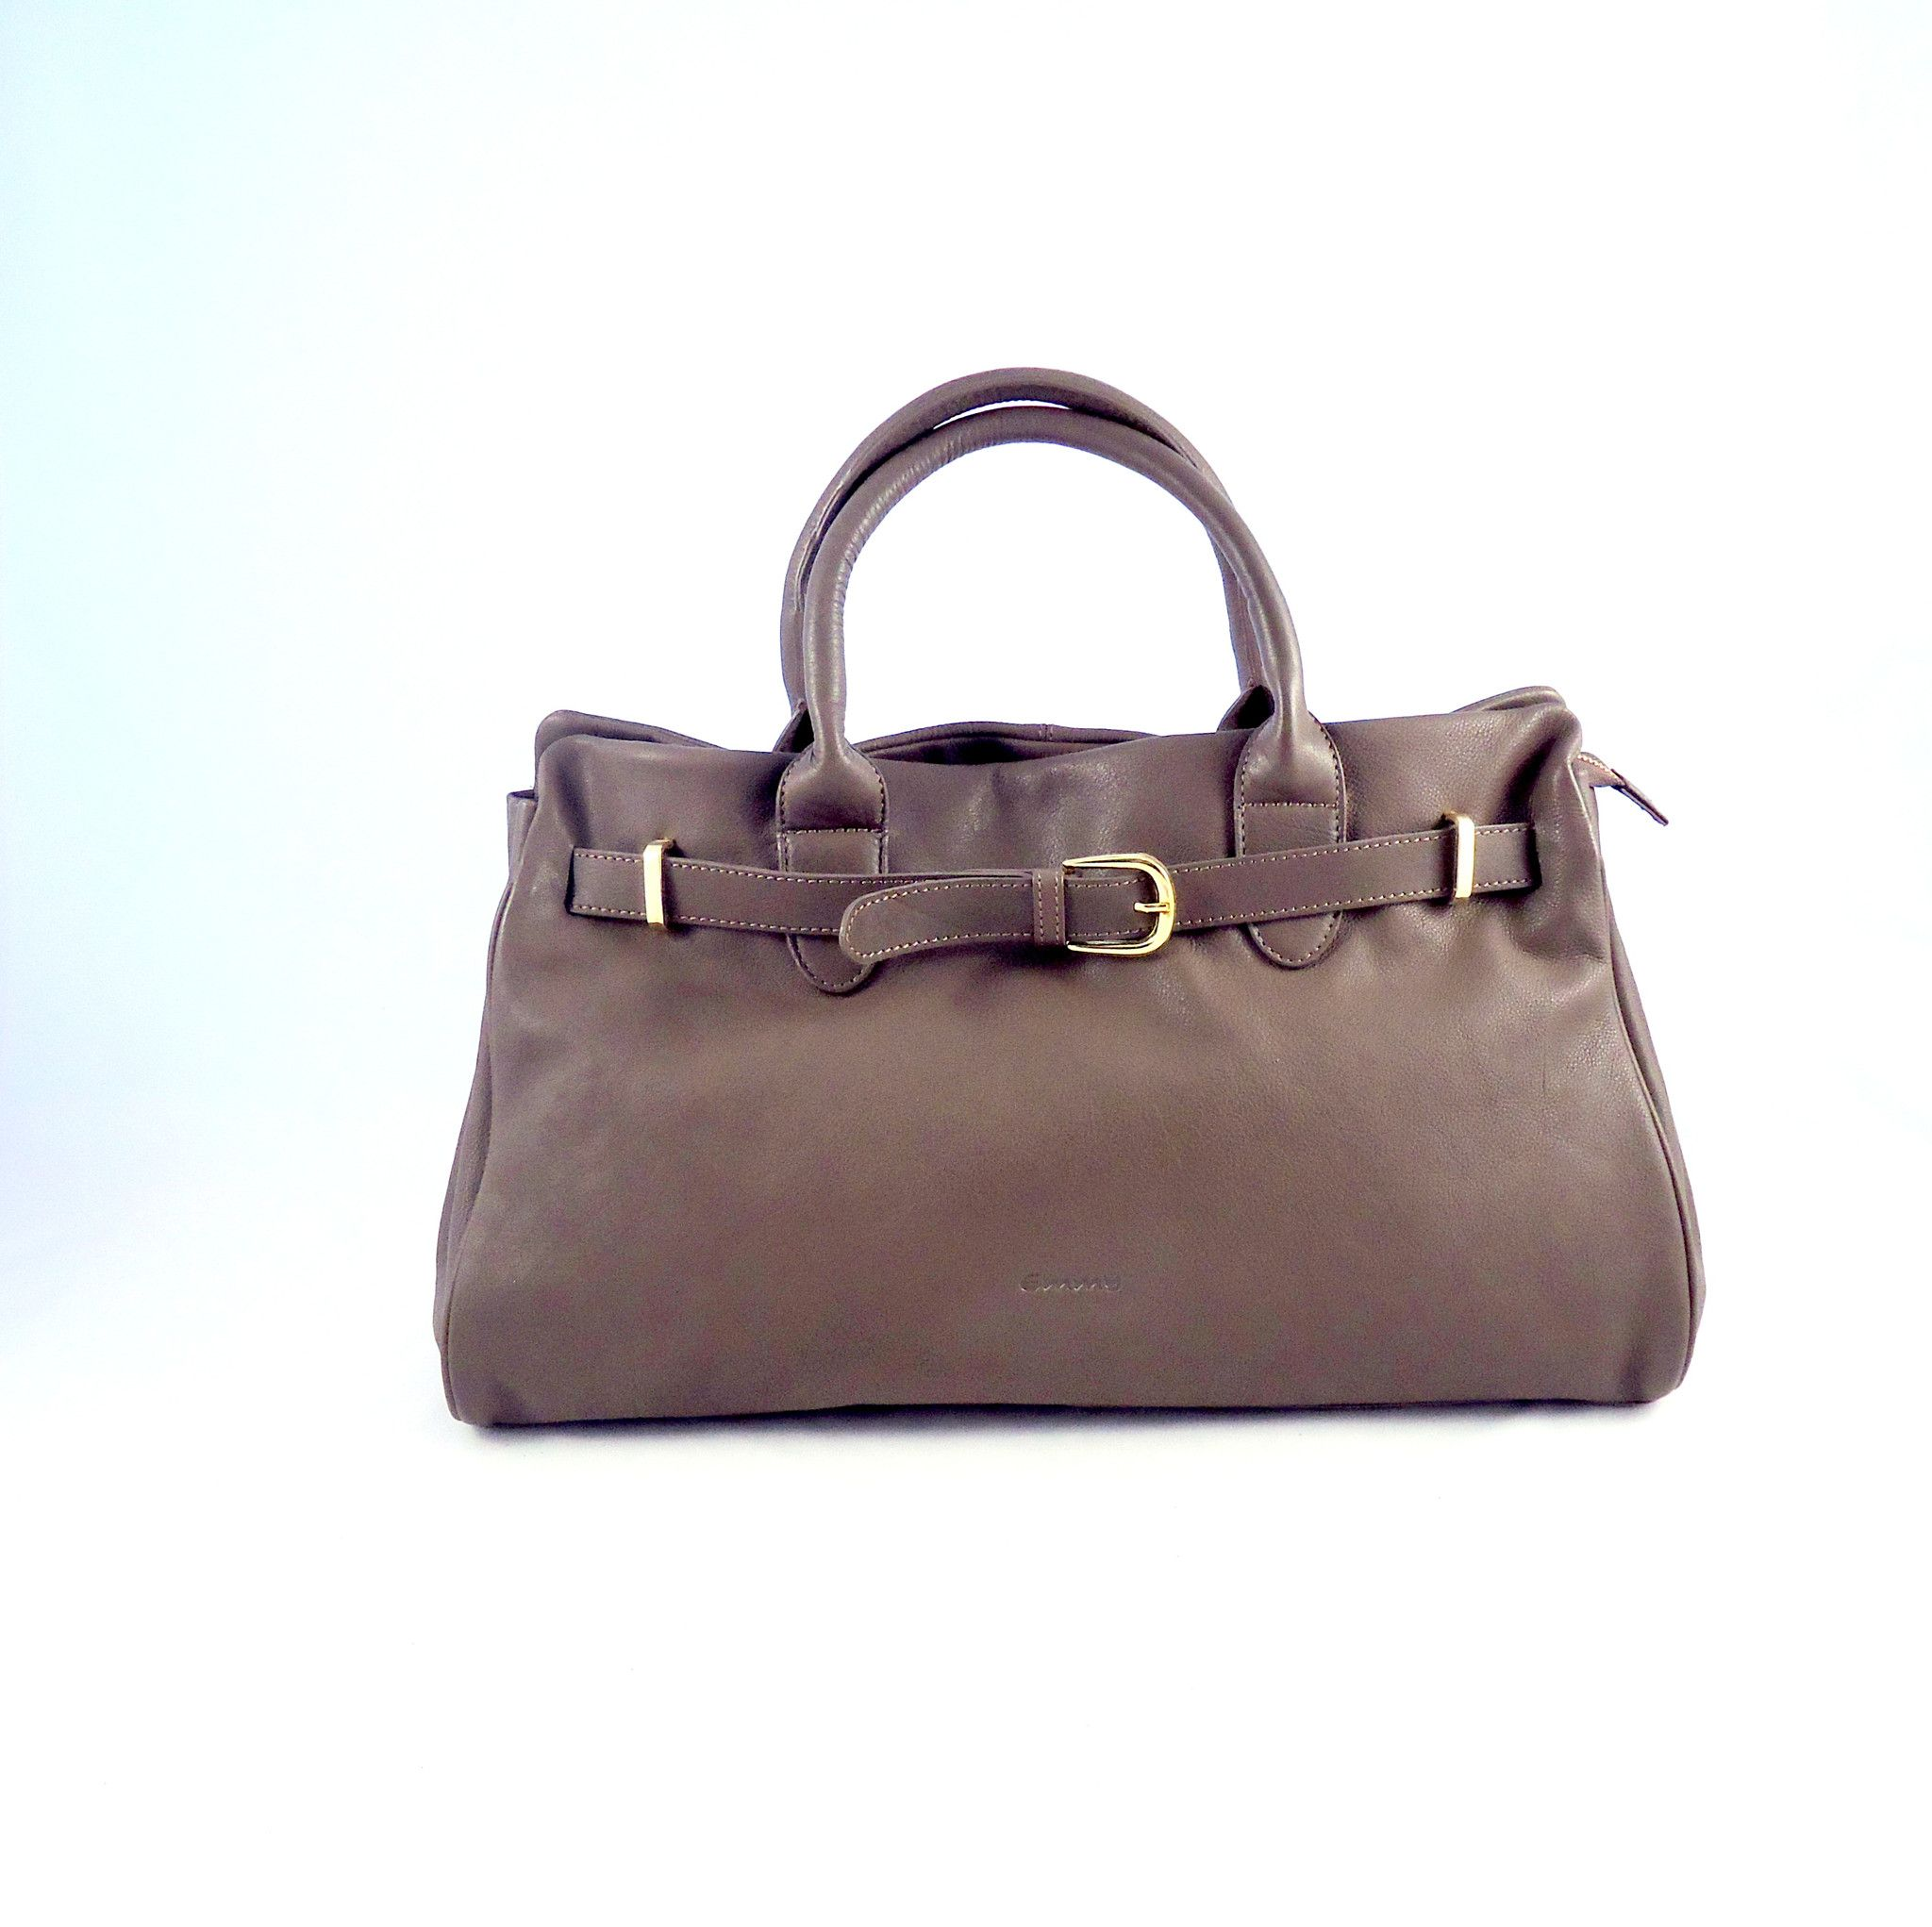 Emmy By Wieleman The Handbag Whitchurch